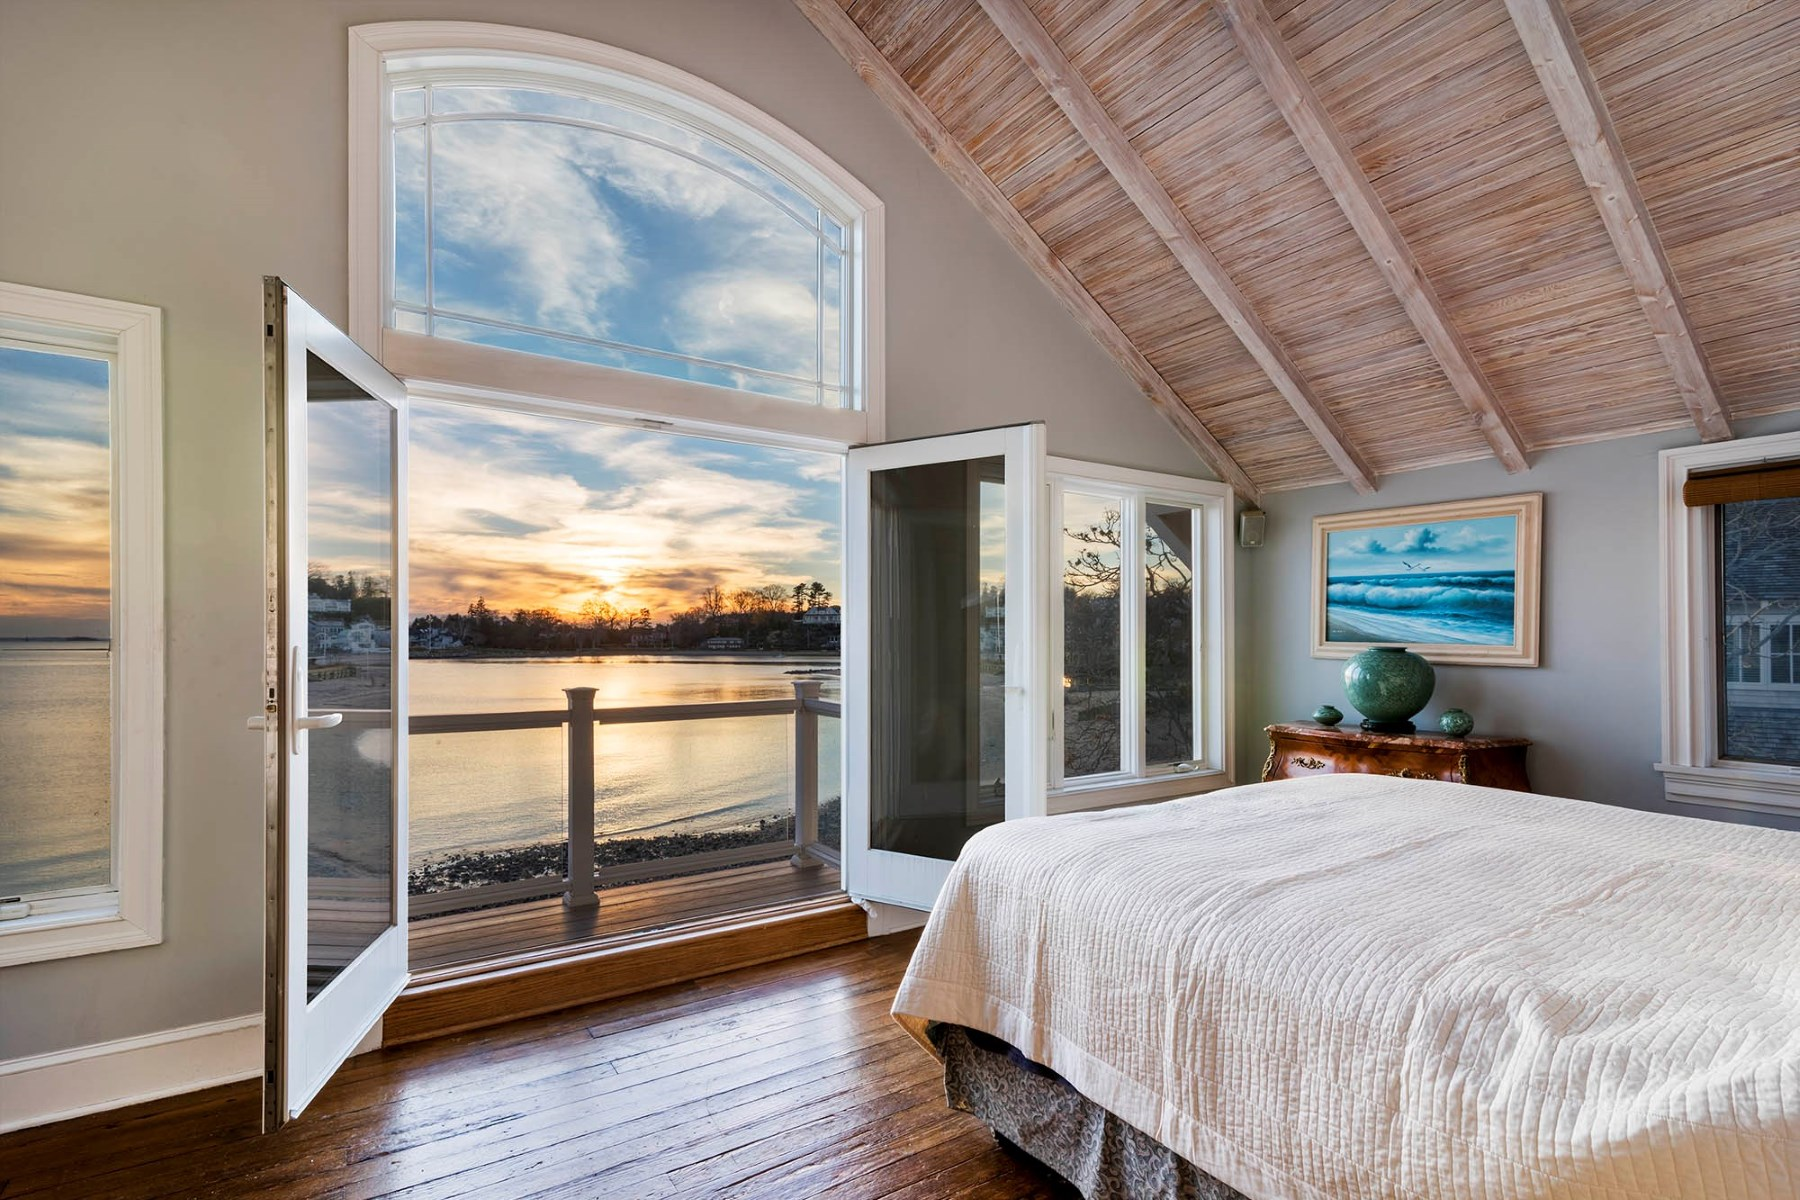 Villa per Vendita alle ore Private Beachside Island Haven 56 Compo Mill Cove Westport, Connecticut, 06880 Stati Uniti